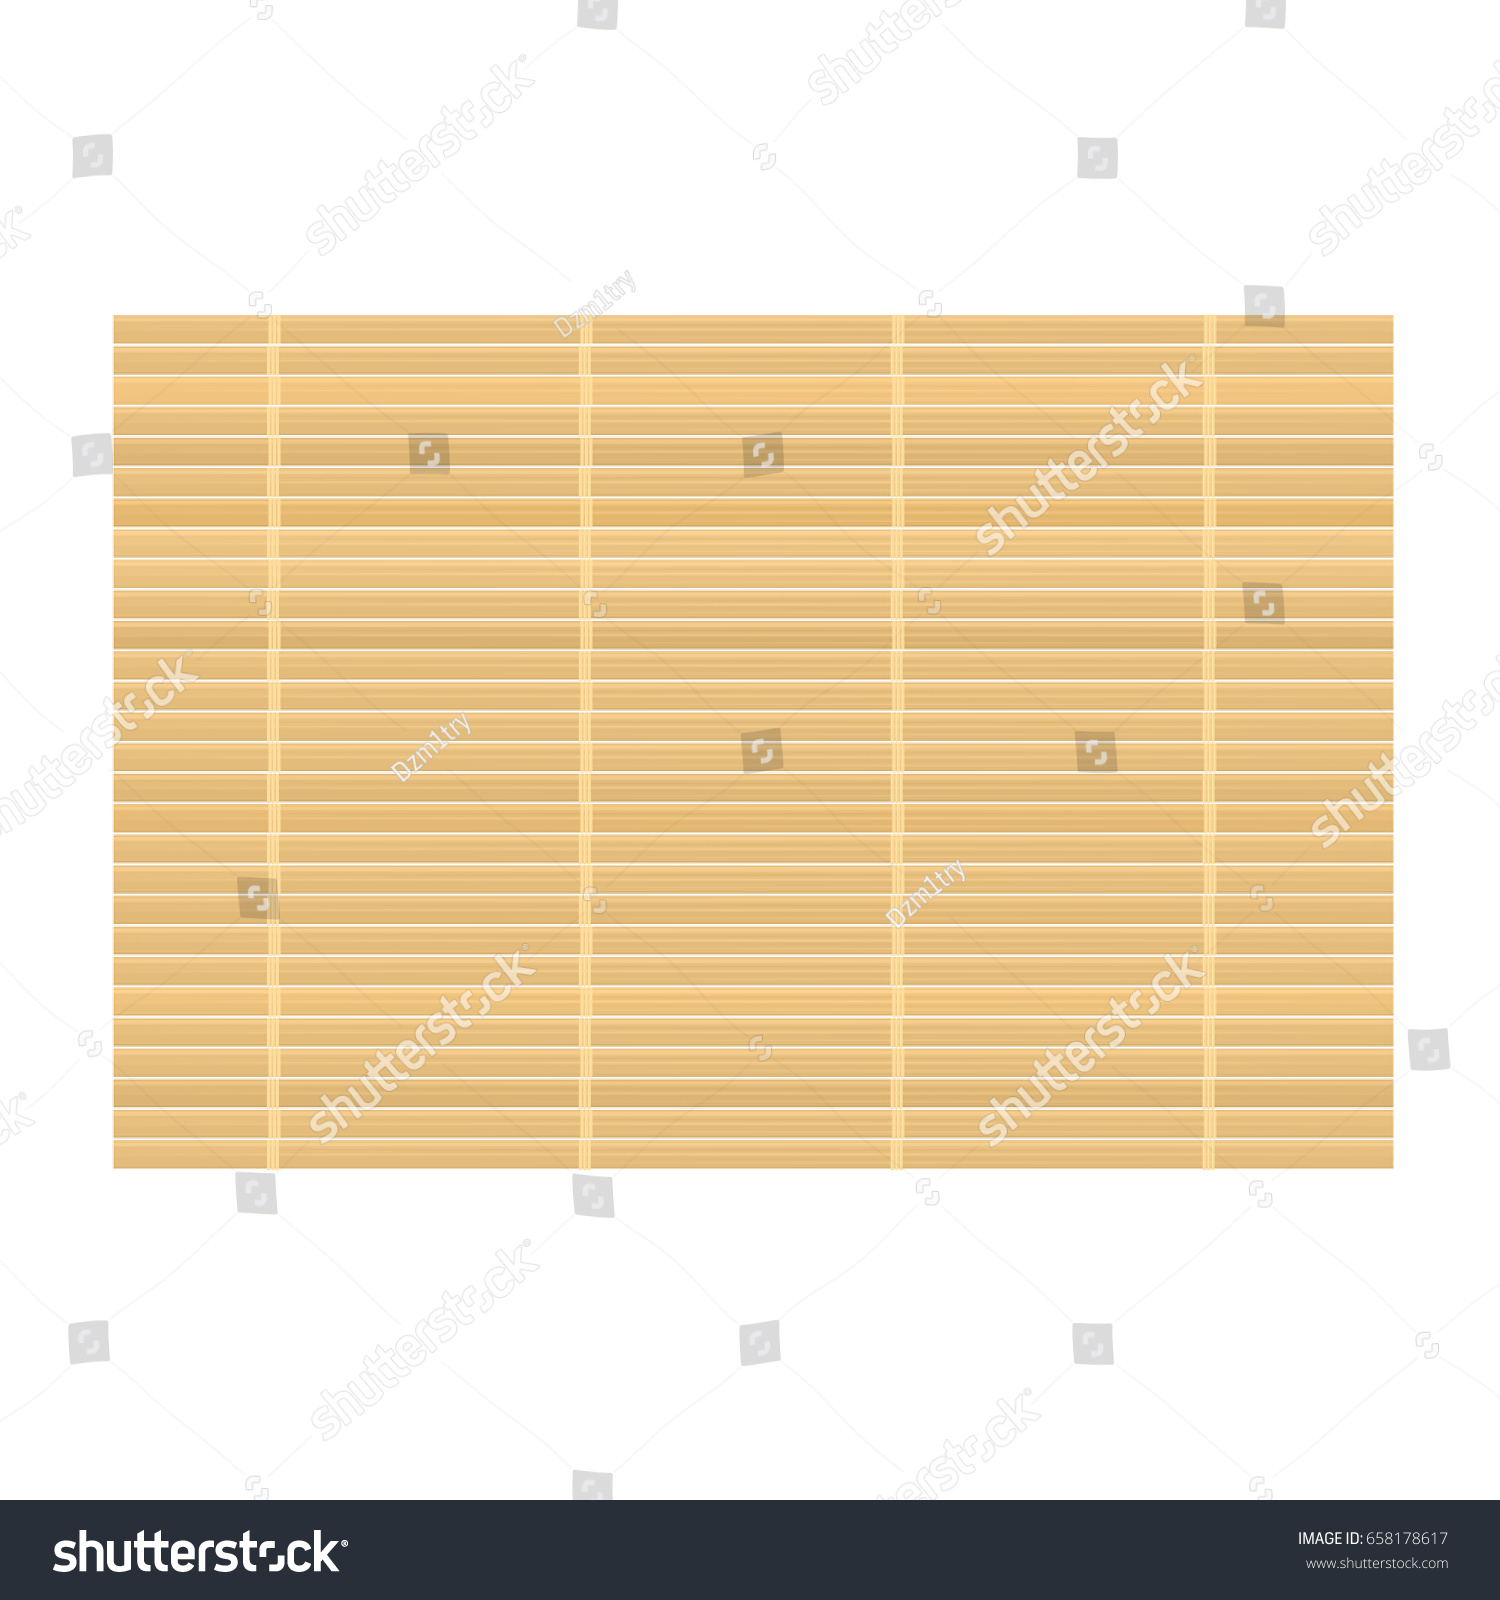 mat using natural depositphotos bamboo background brown stock weave colour photo